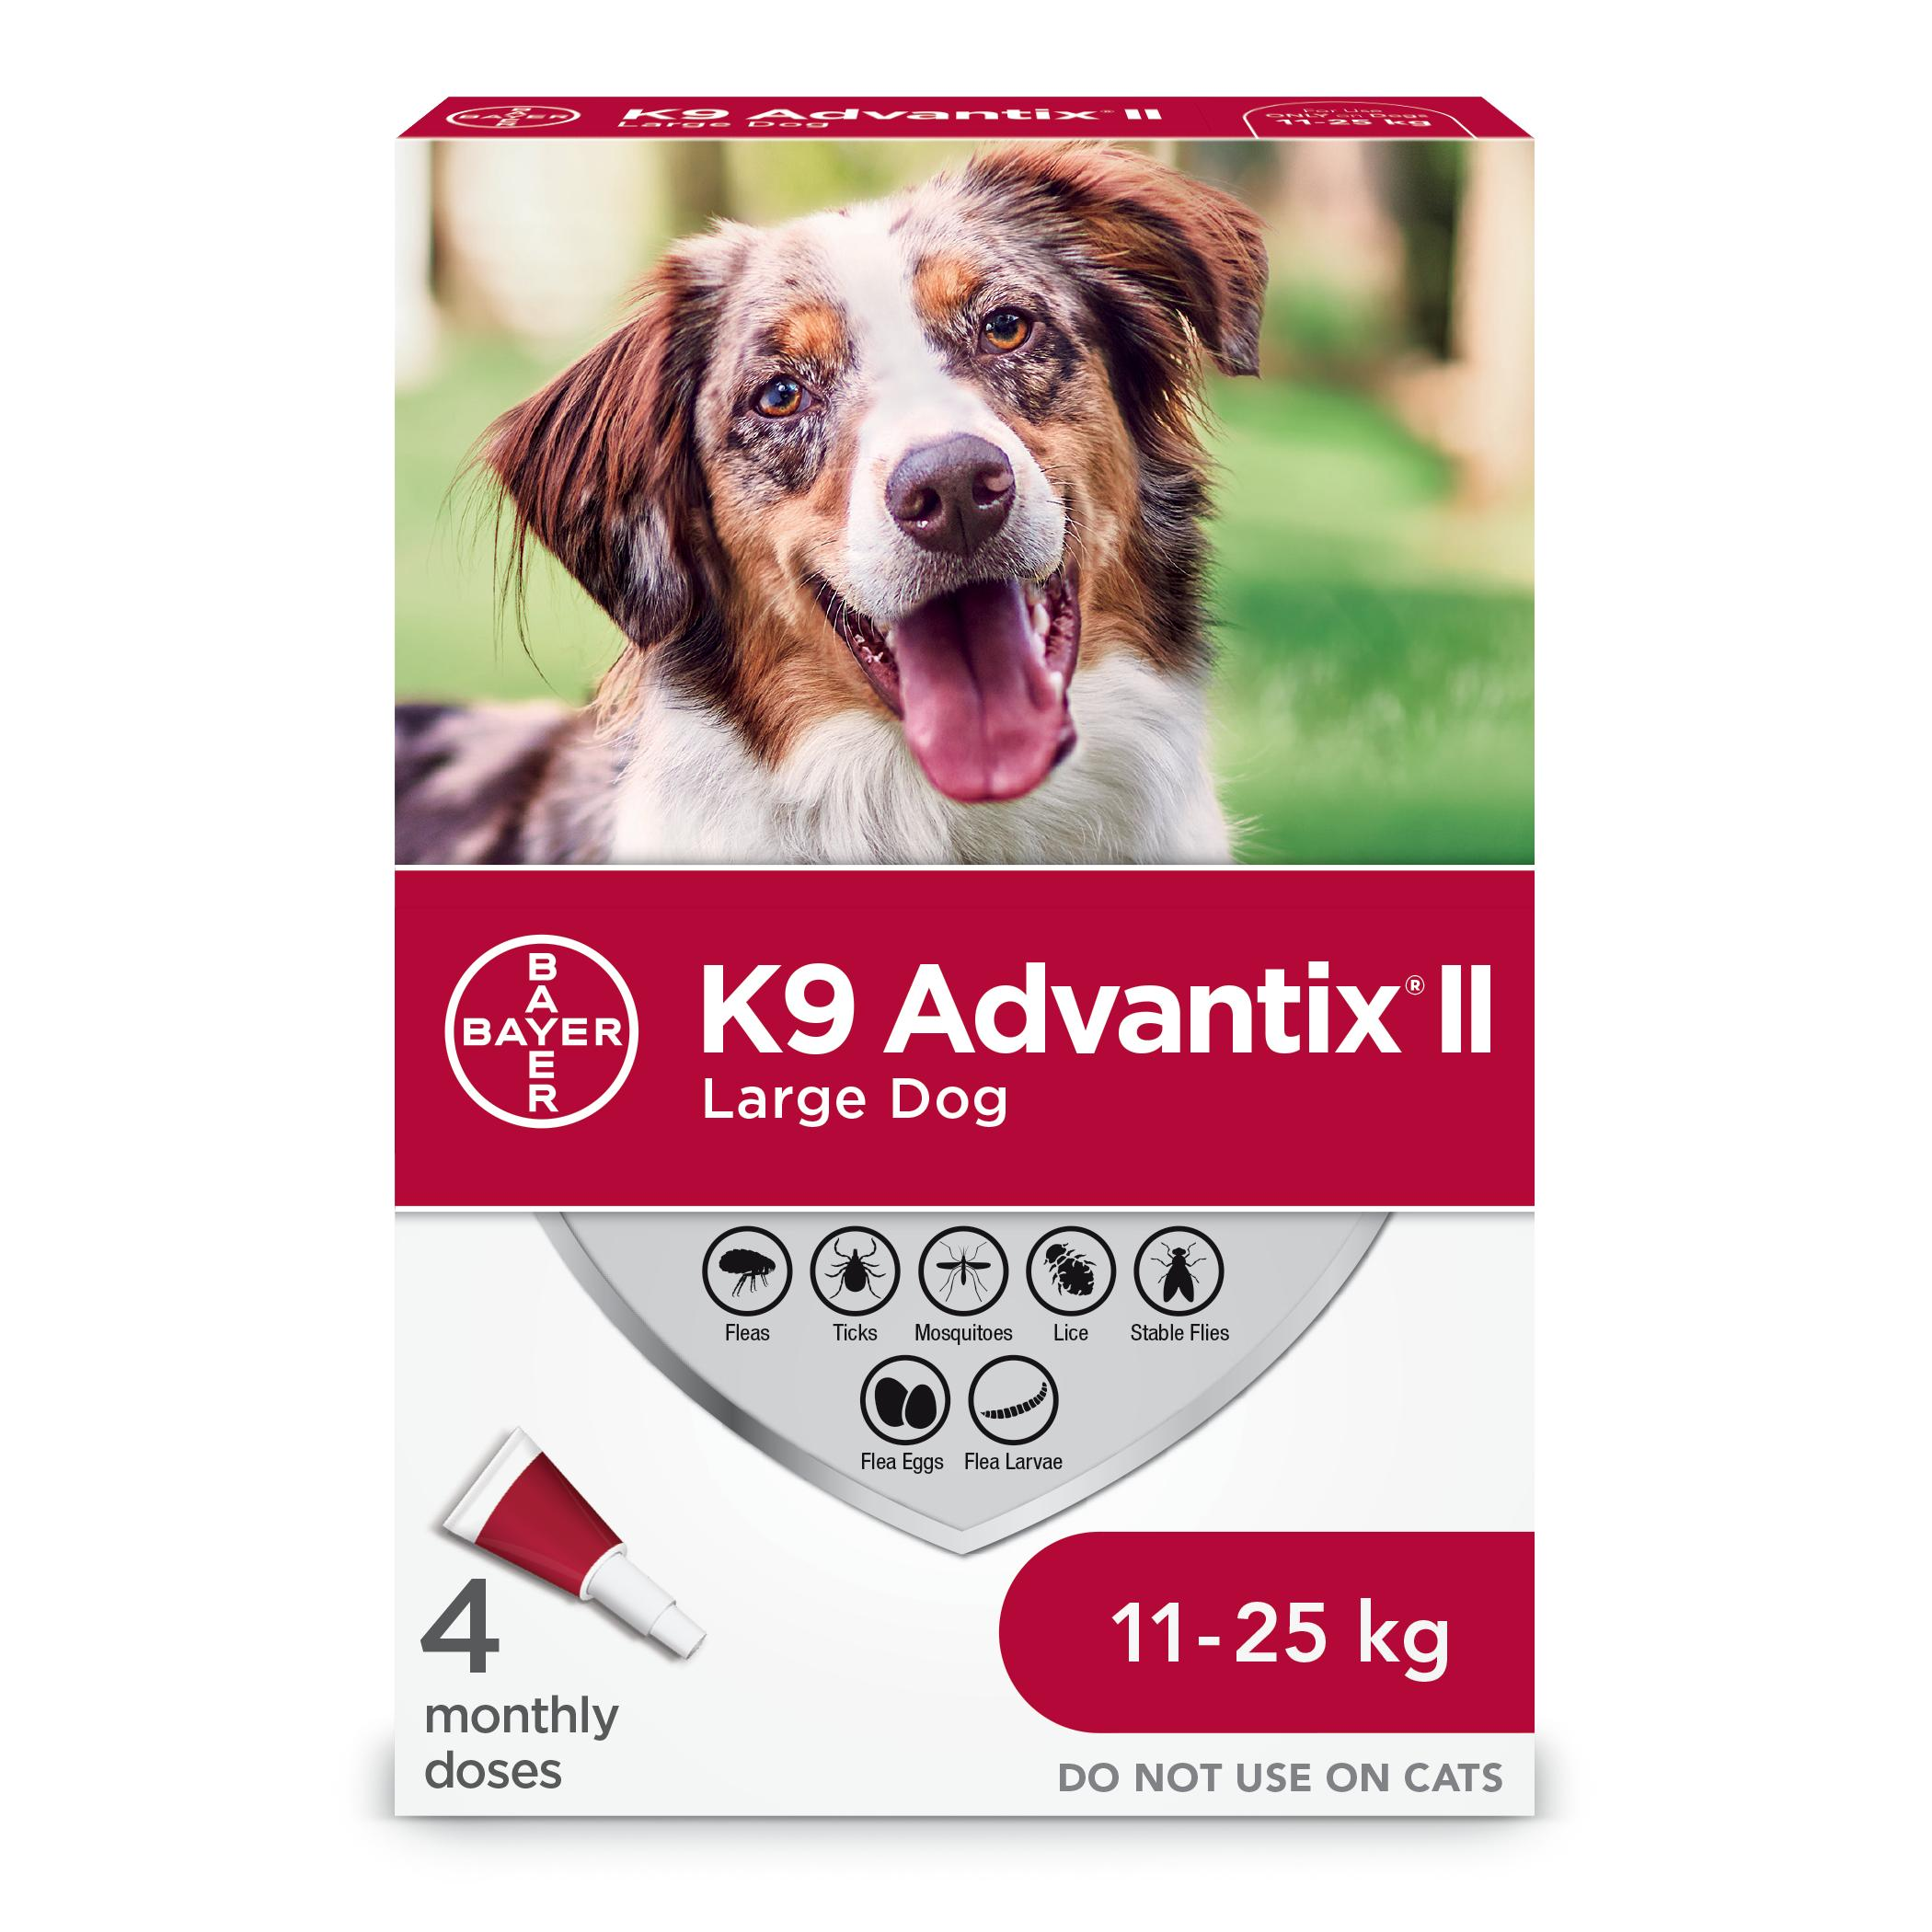 Bayer K9 Advantix II Flea Protection for Large Dogs 11-25-kg, 4-pk